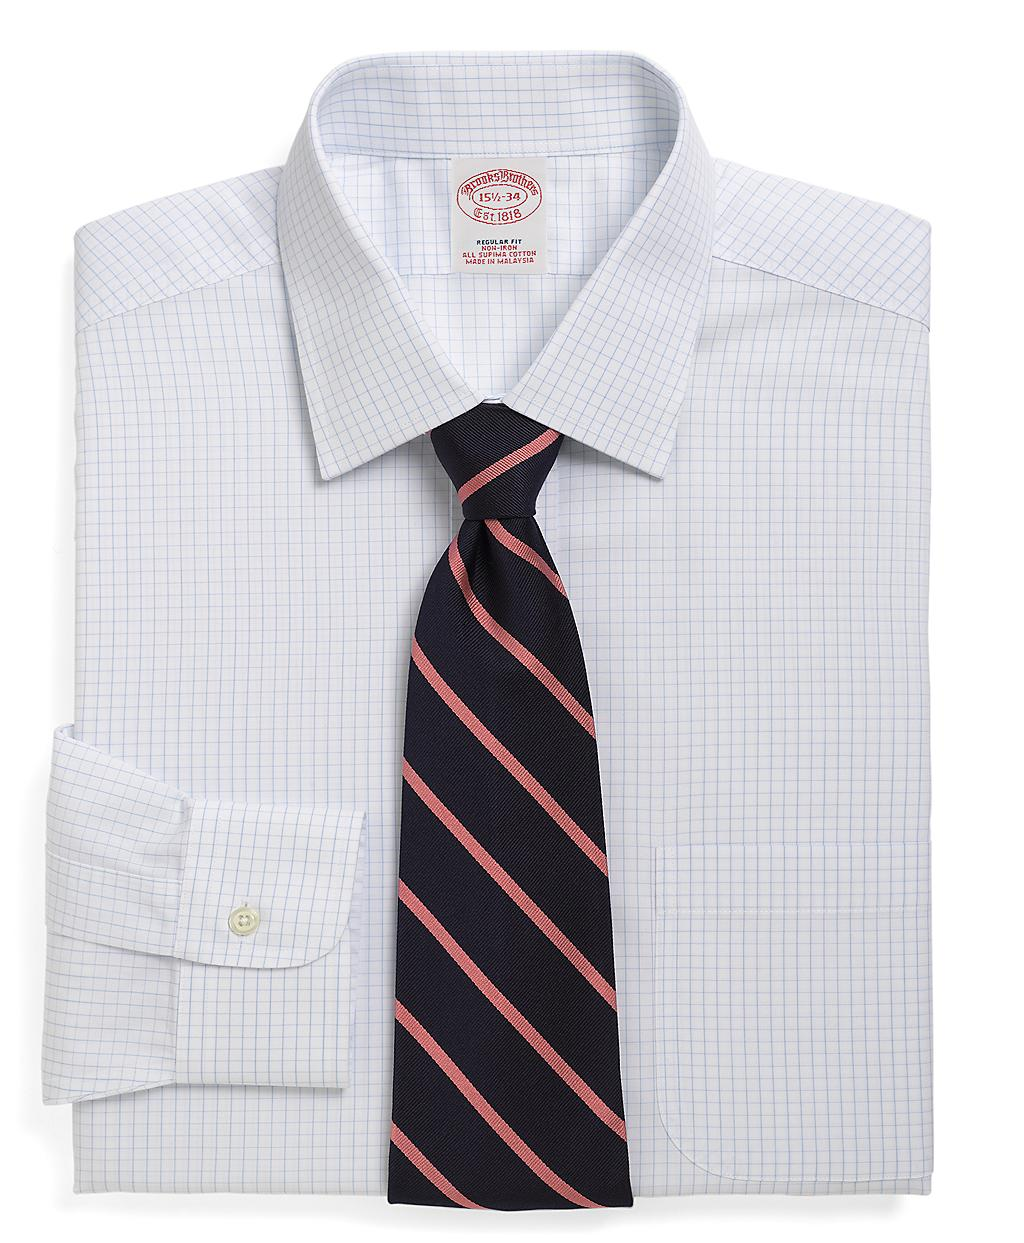 Find wrinkle free shirts at ShopStyle. Shop the latest collection of wrinkle free shirts from the most popular stores - all in one place. Brooks Brothers Wrinkle Free Shirt Stripe Shirt Wrinkle Free Get a Sale Alert at Farfetch Durban D'urban slim wrinkle free shirt $ Get a Sale Alert at Farfetch Durban D'urban shortsleeved wrinkle.